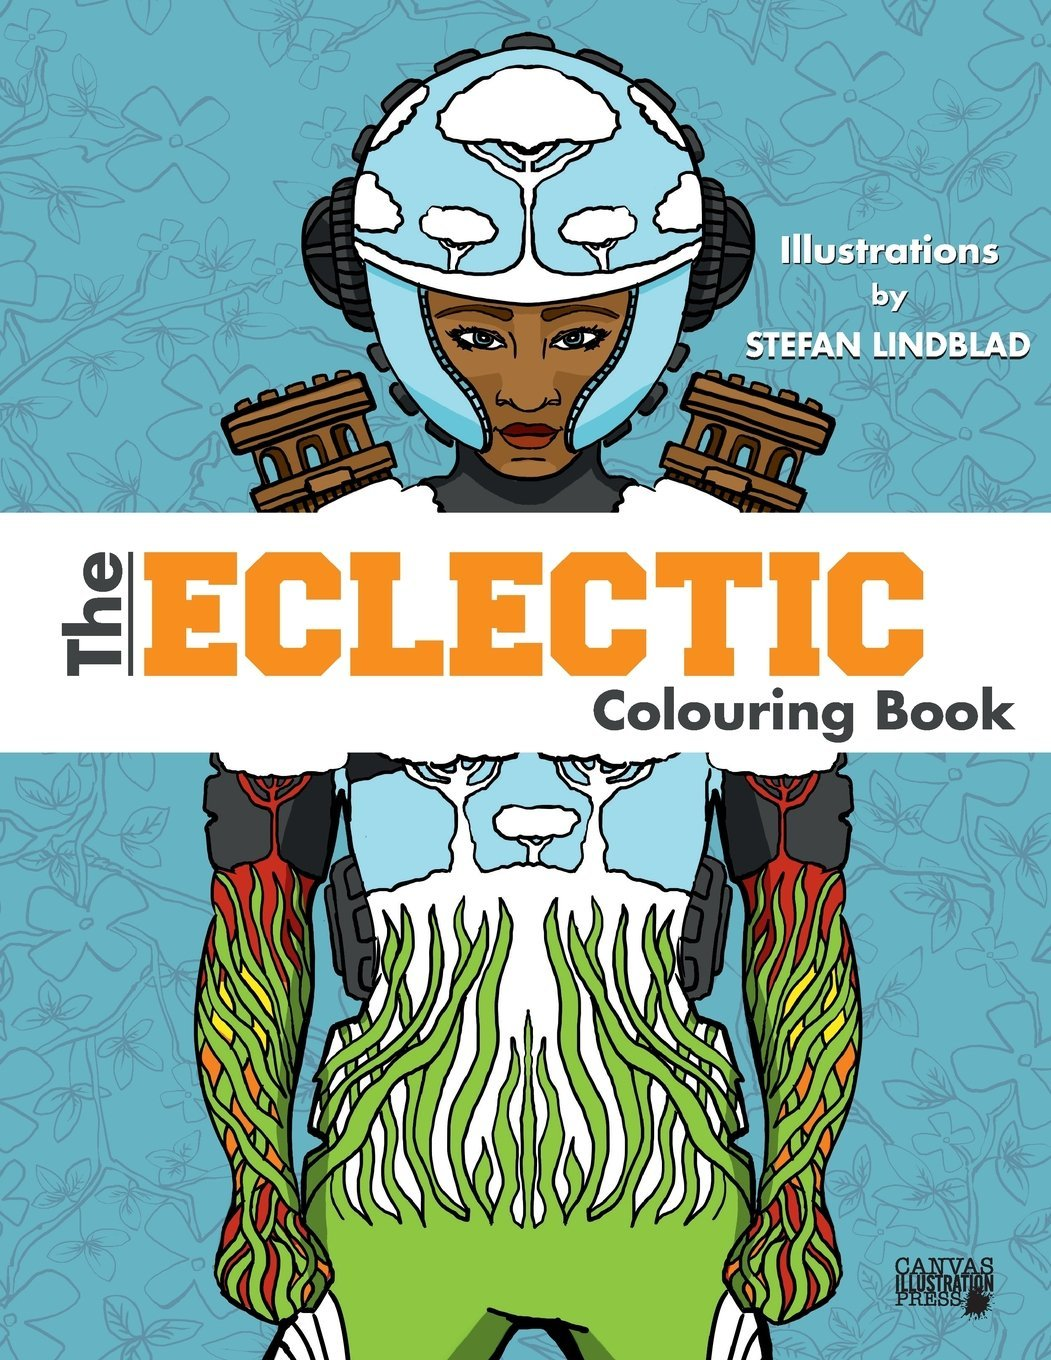 The Eclectic Colouring Book, Coloring, Illustrator, illustrations, by Stefan Lindblad, woman, afro american, pilot, space, book cover, design